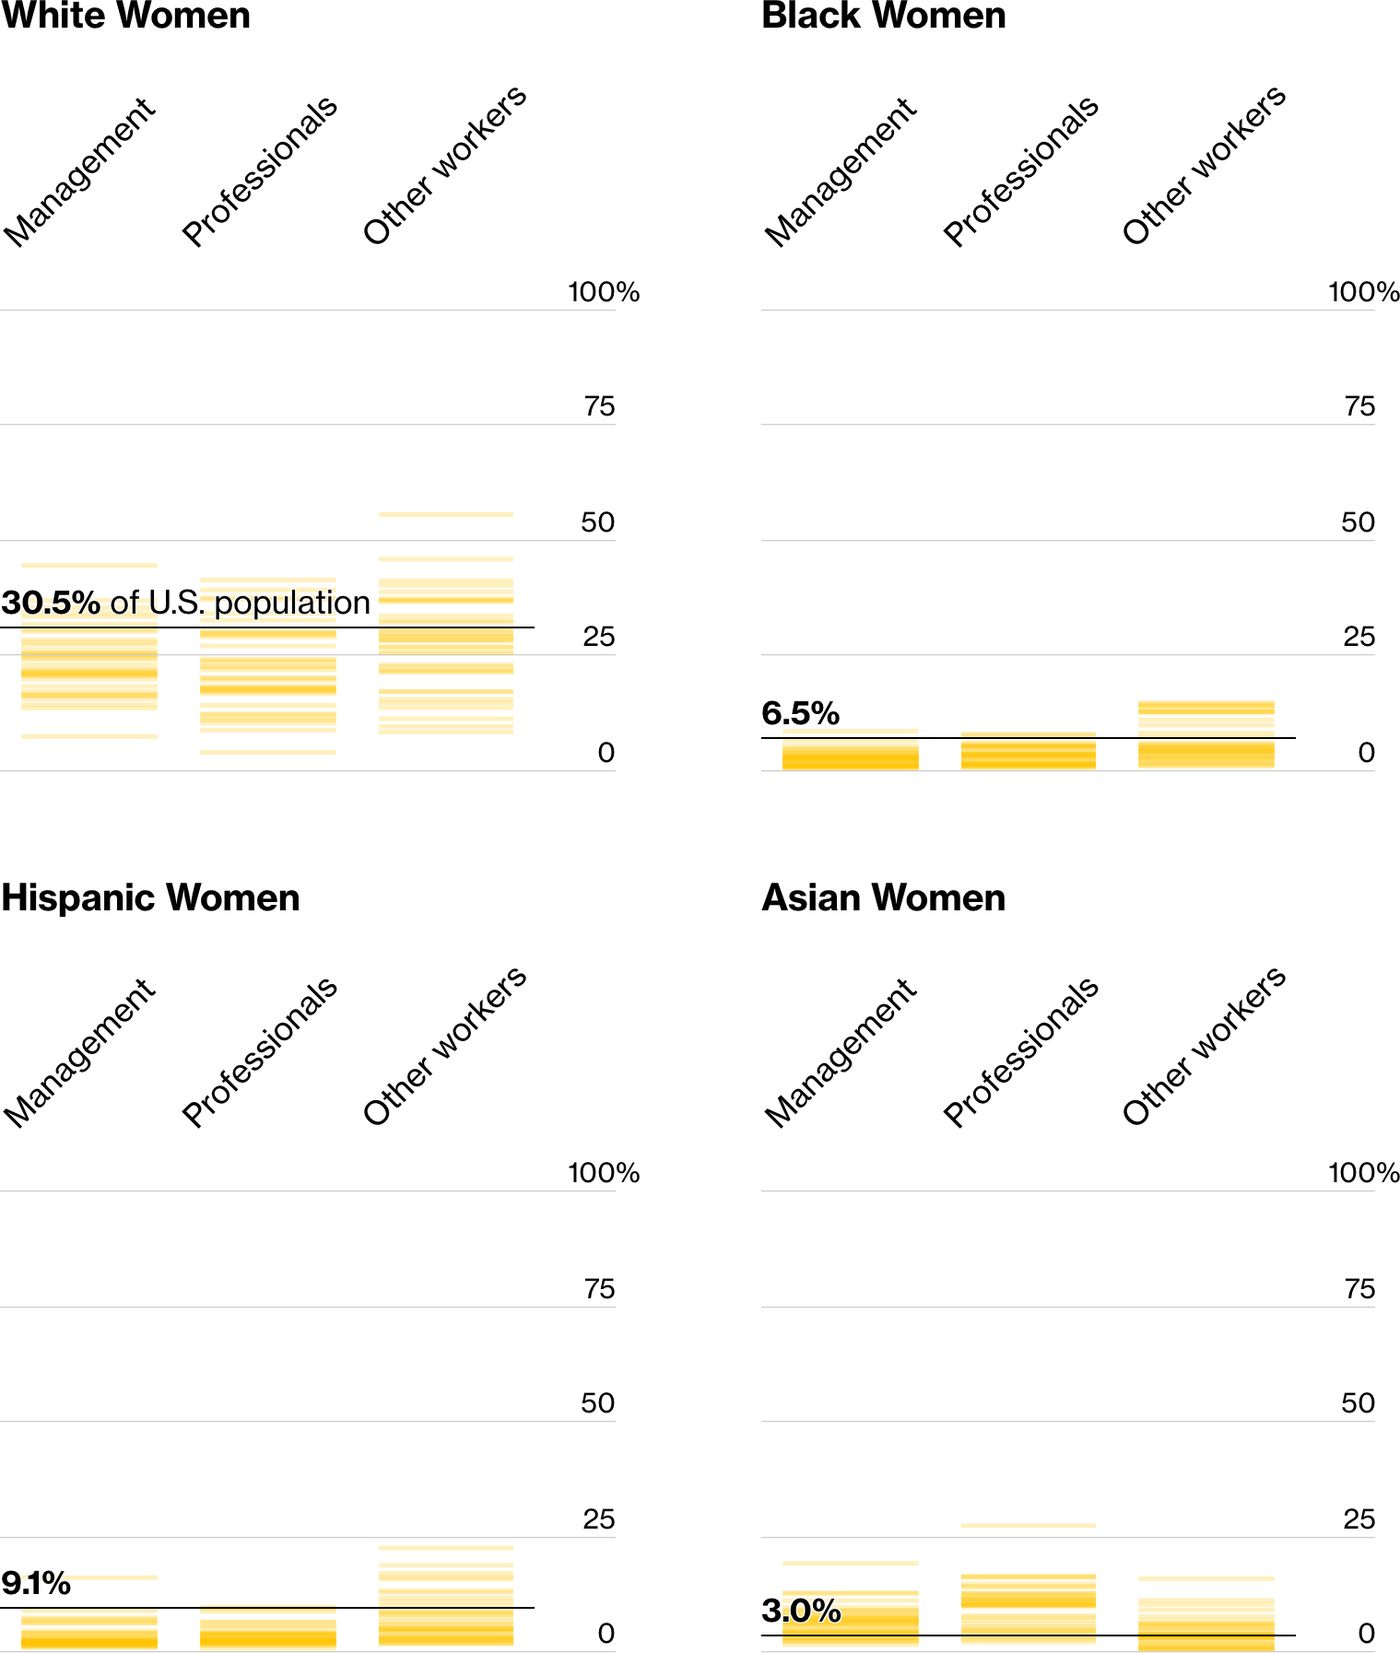 Graphic: Lagging Behind on Representation for Women of Color